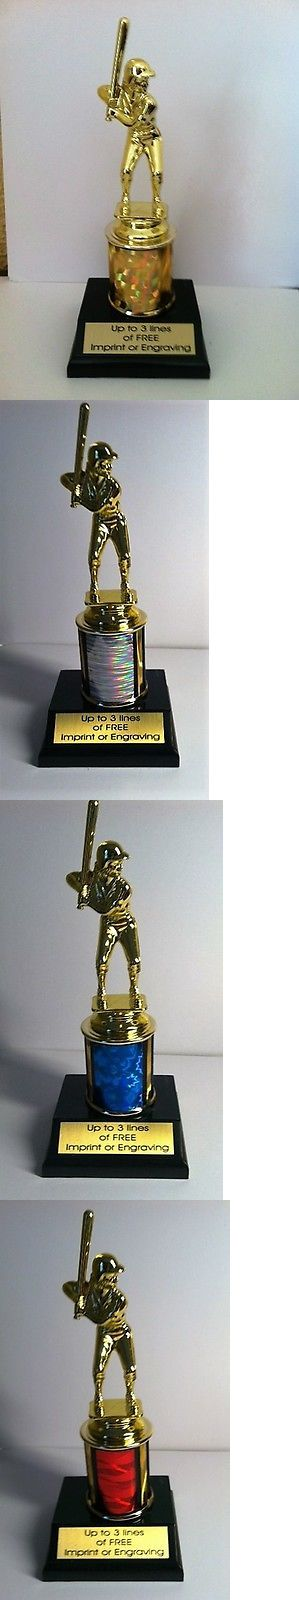 Other Baseball and Softball 181355: 12 Girls Softball Trophies For $48.00 BUY IT NOW ONLY: $48.0